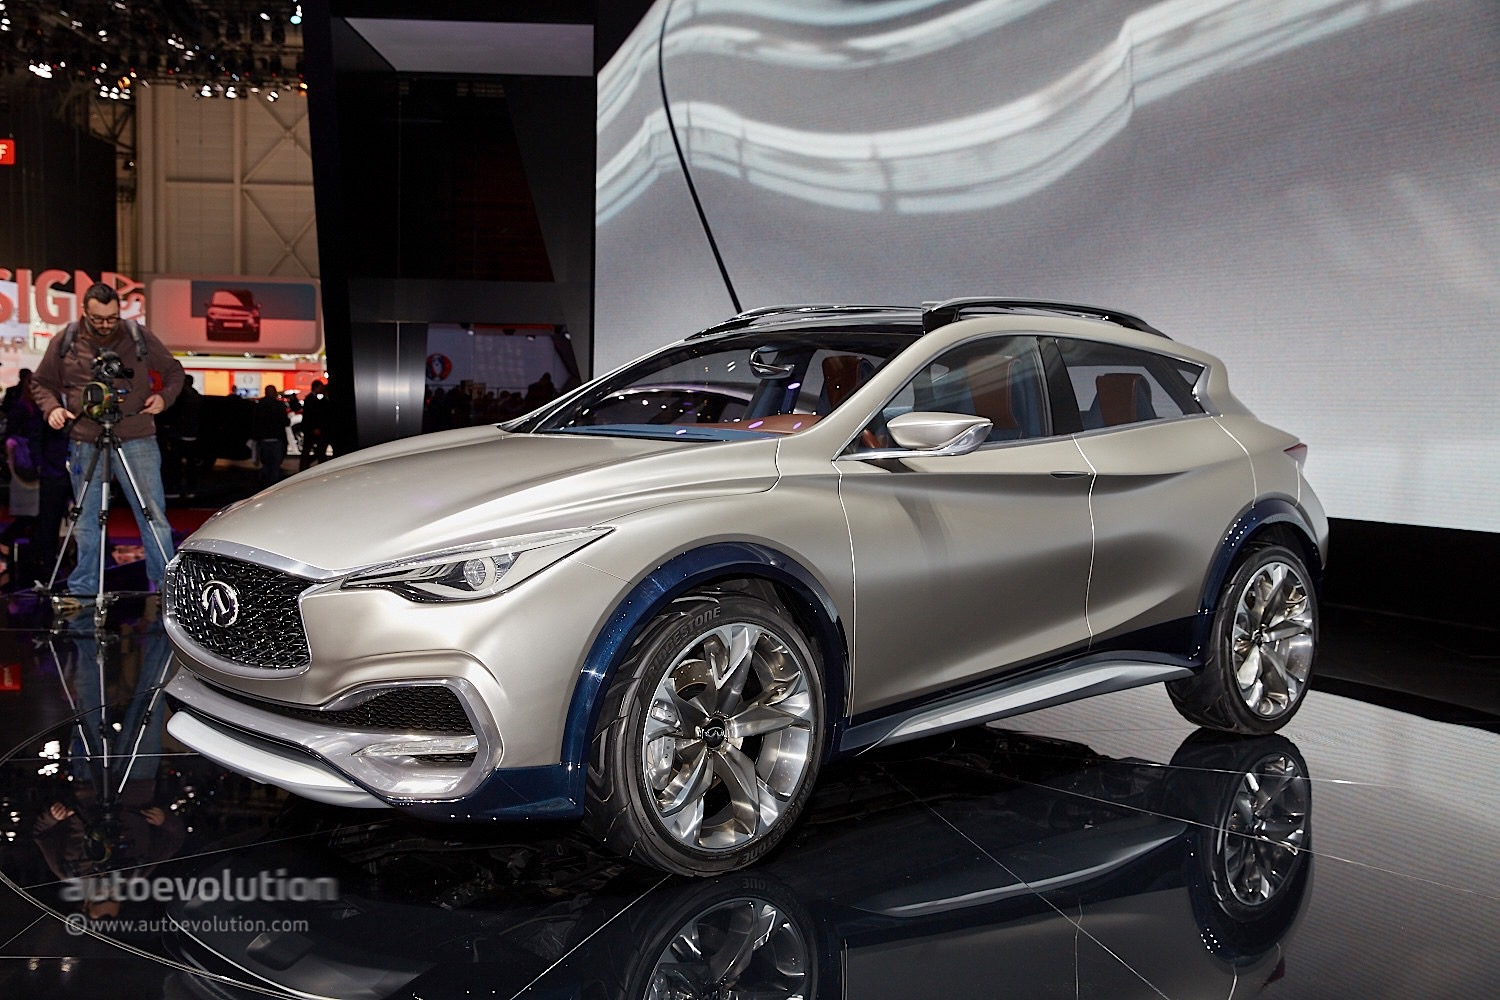 infiniti s qx30 concept is bringing sexy back in geneva autoevolution. Black Bedroom Furniture Sets. Home Design Ideas